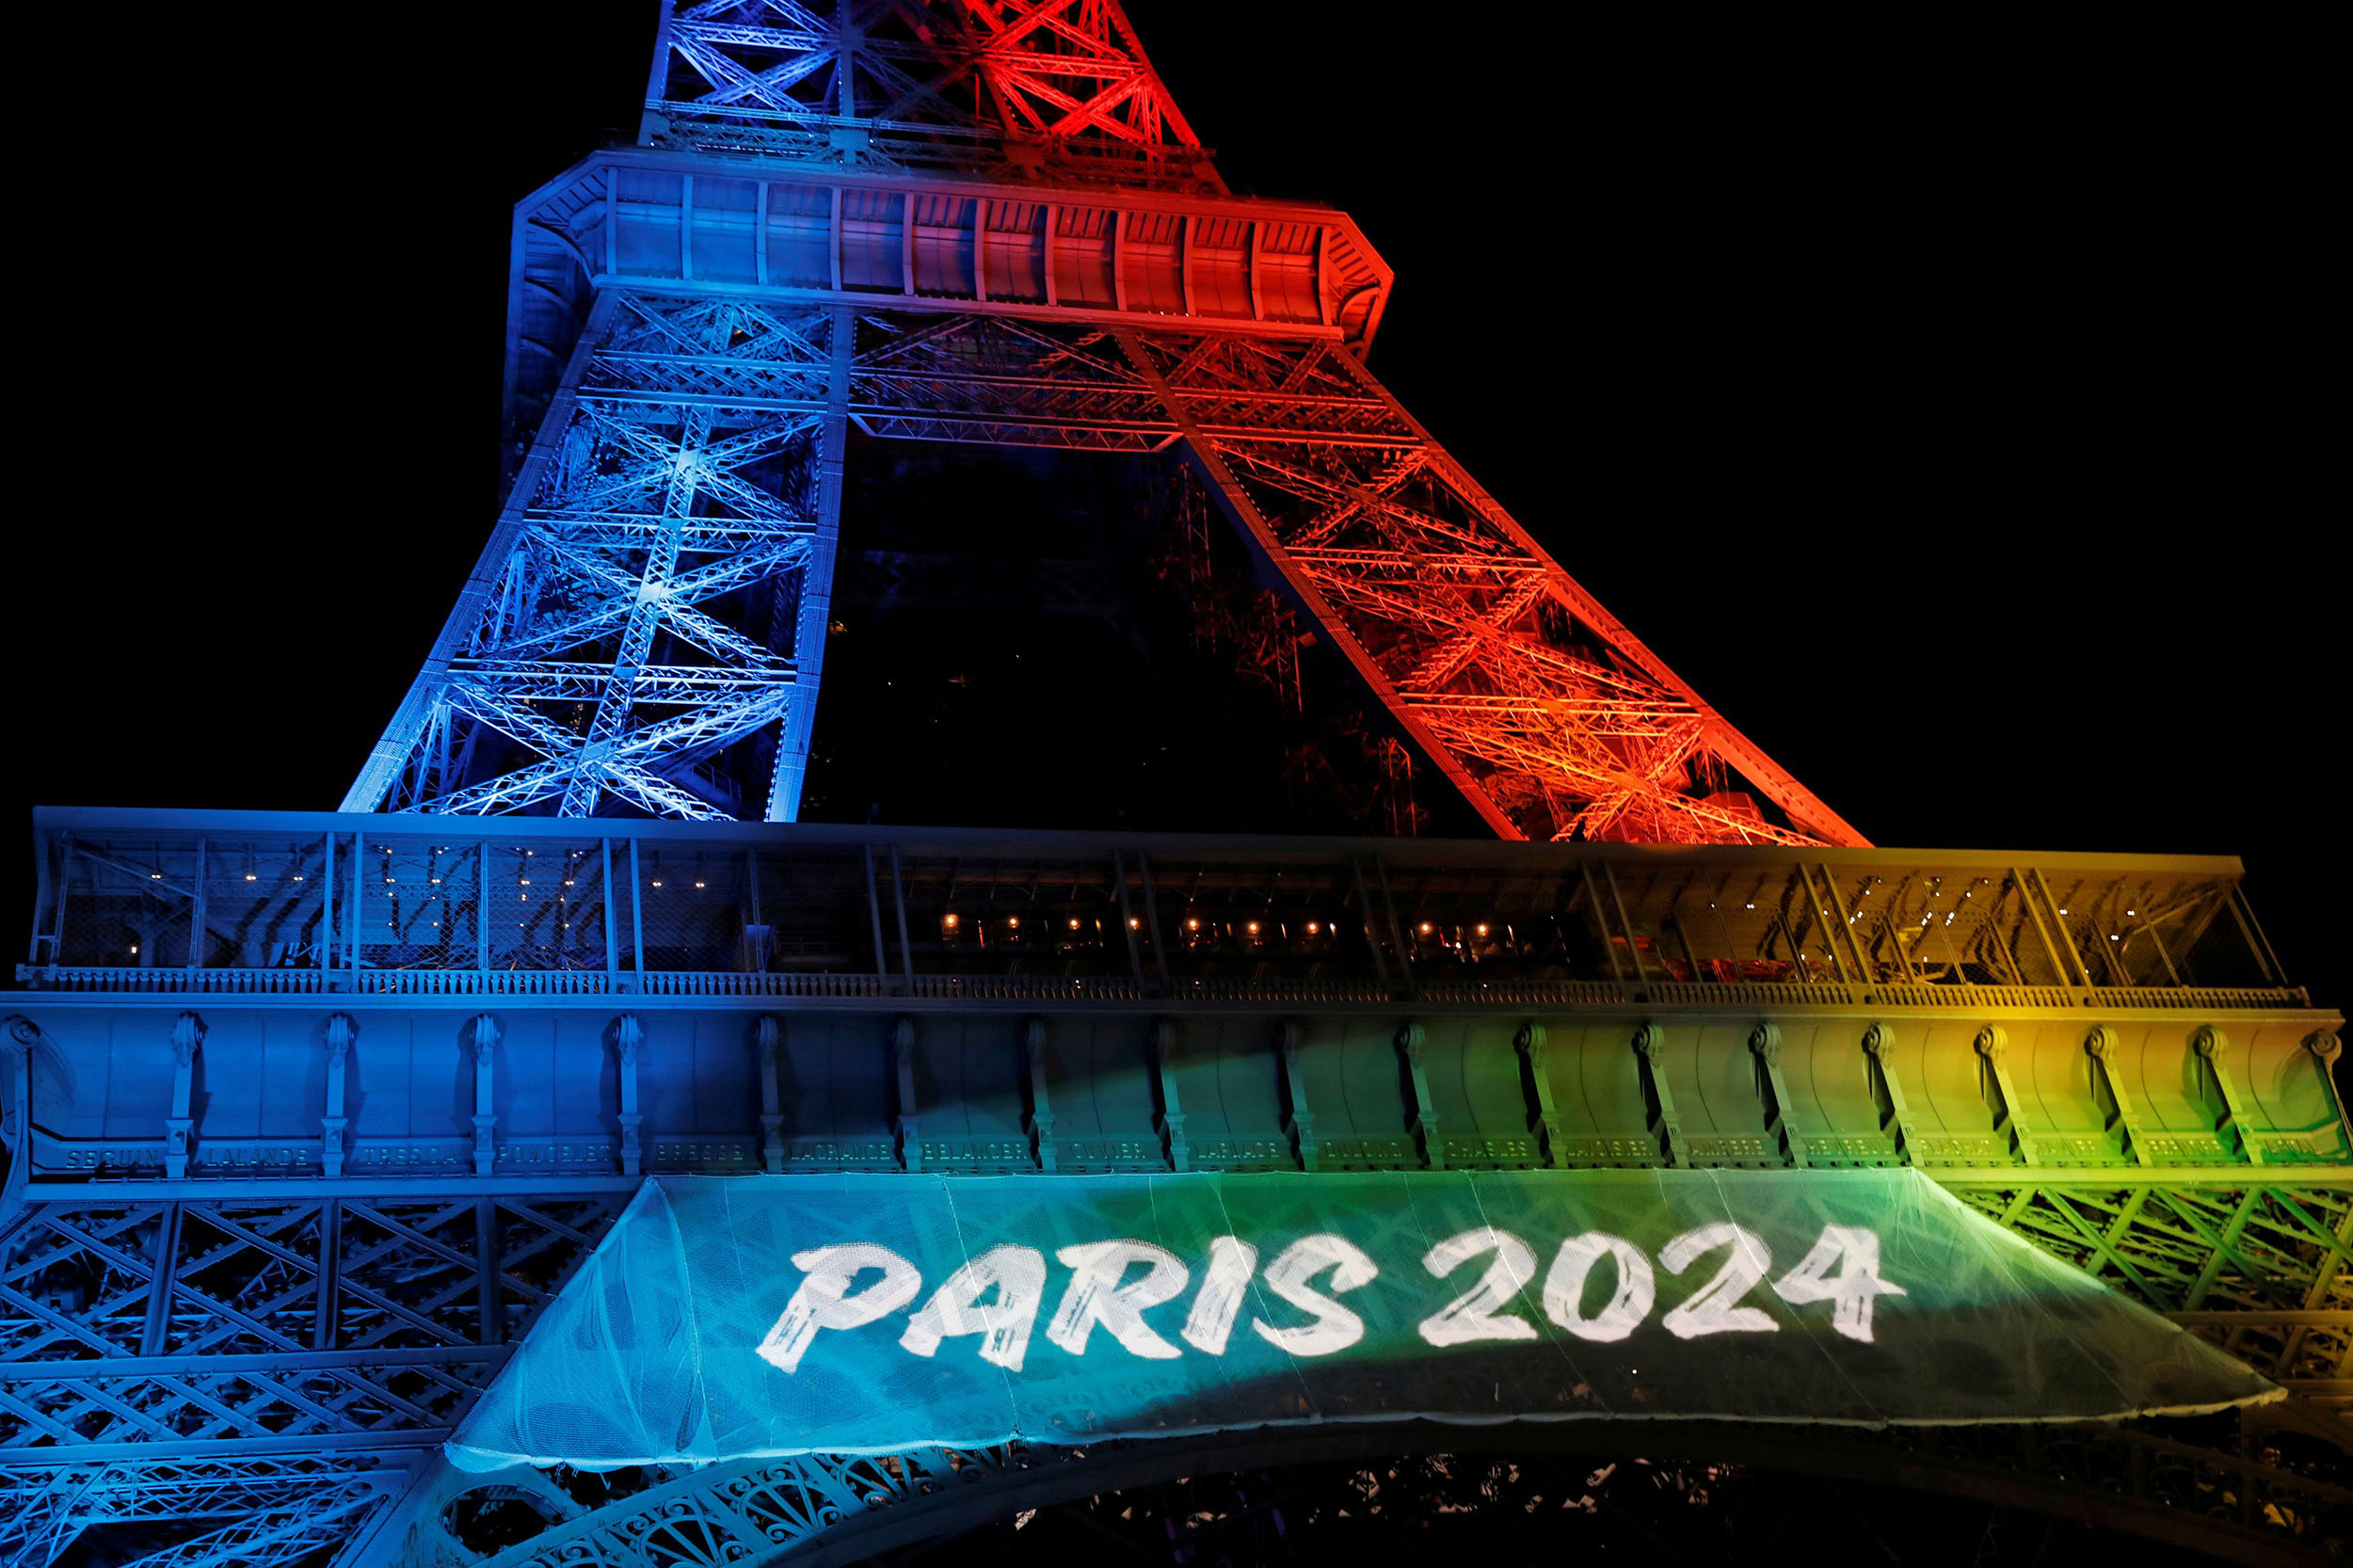 Image: The Eiffel Tower is Lit in the Colors of the Olympic Flag